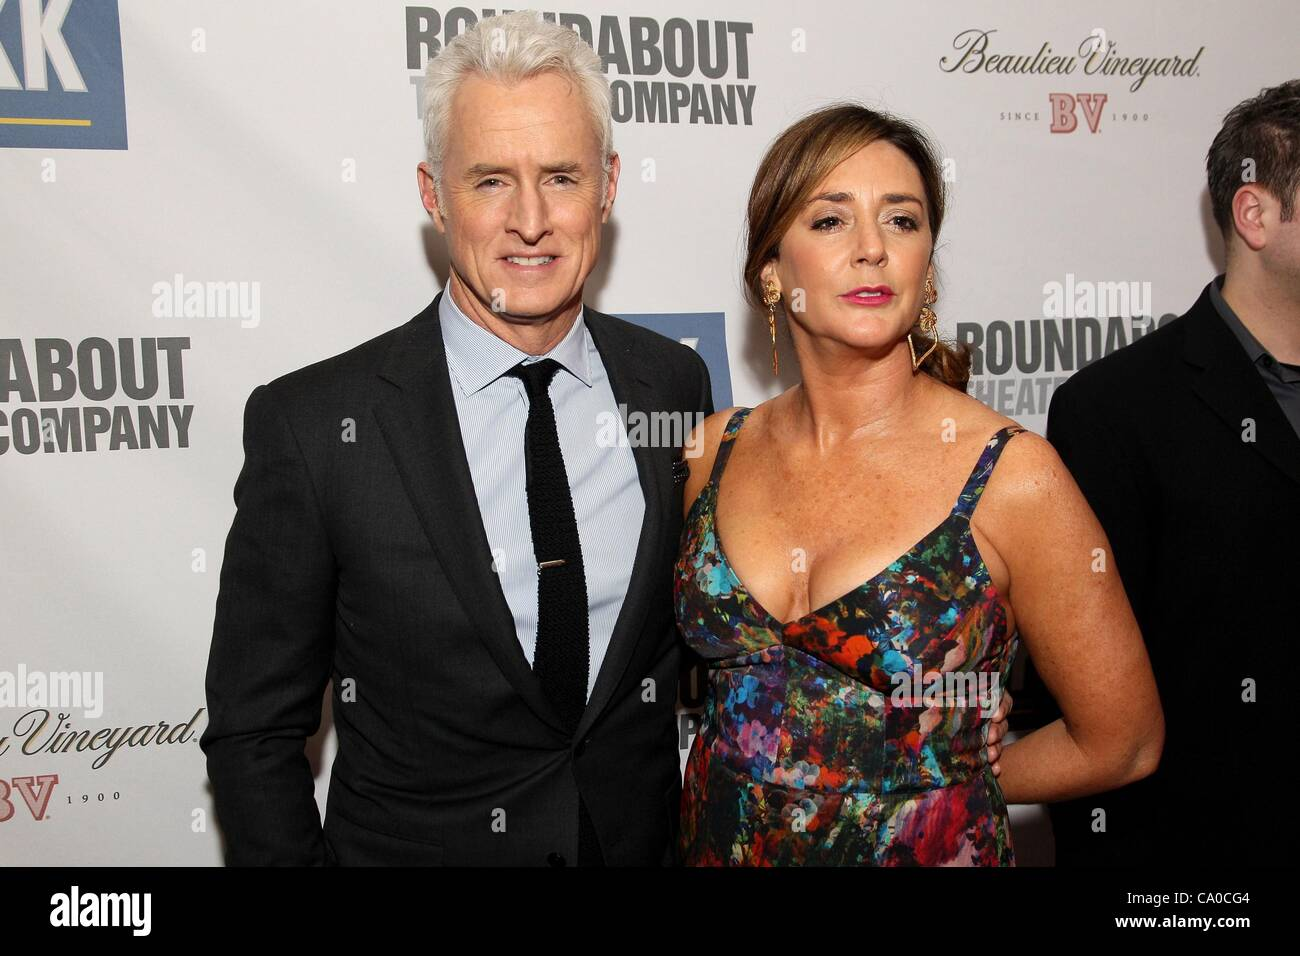 The Roundabout Theatre Company vowed to renovate the theatre in and re-opened it as the American Airlines Theatre on 30th June , after American Airlines agreed to donate $ million to help cover the costs of the renovation.